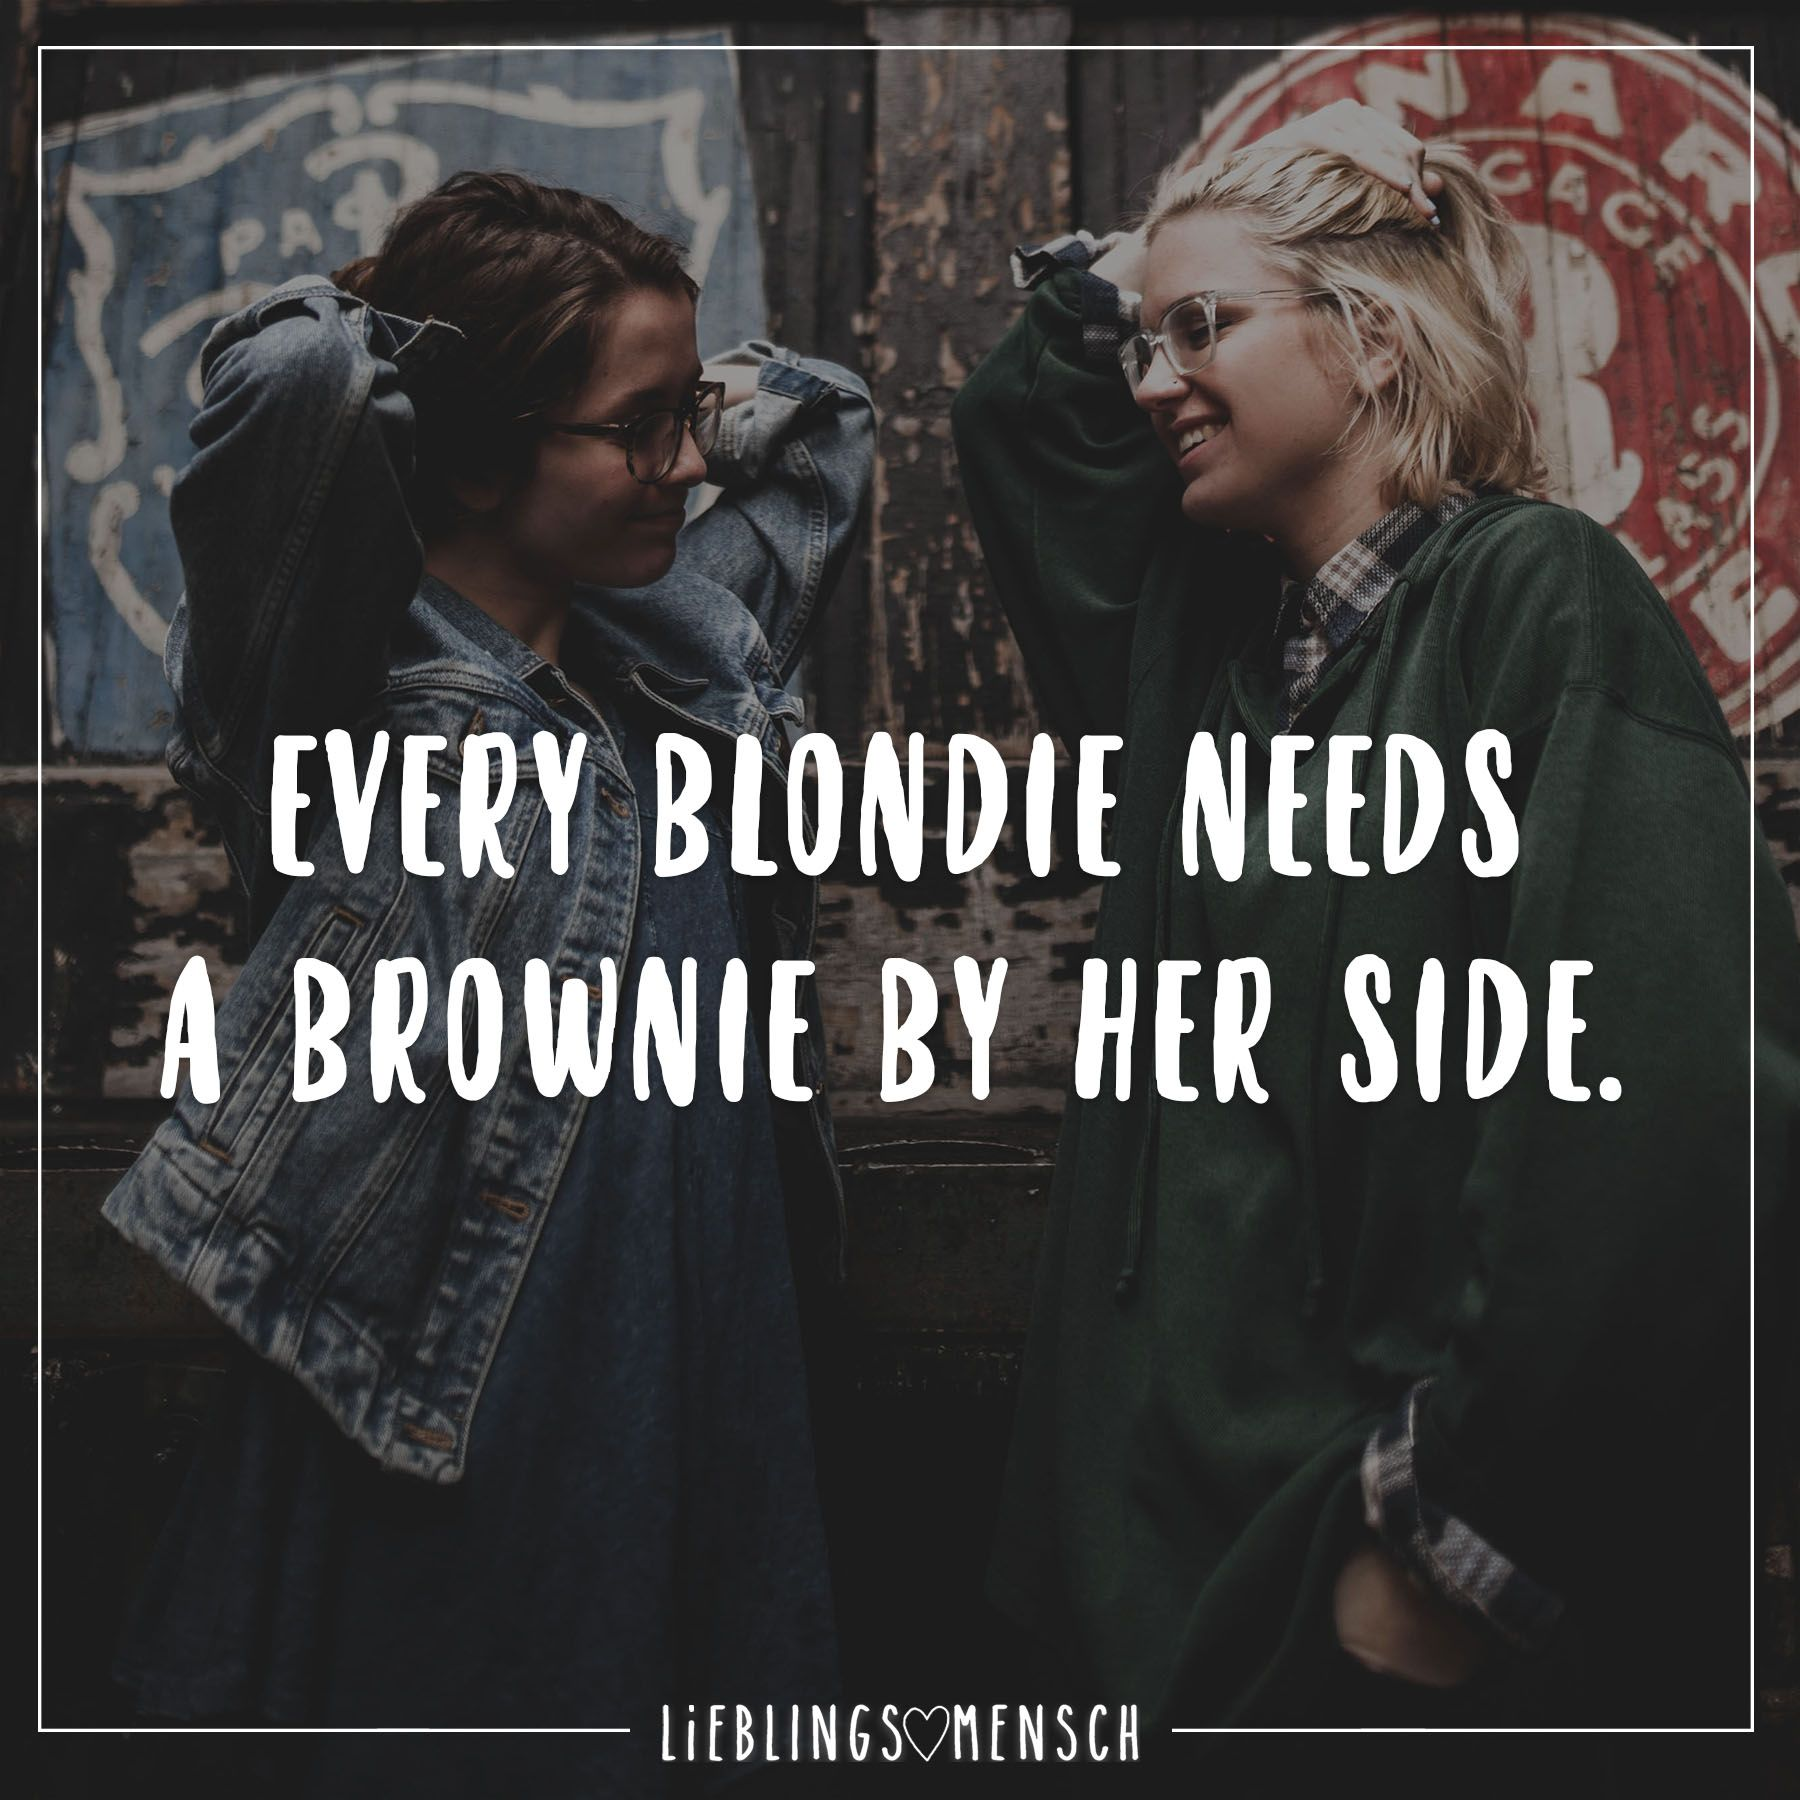 every blondie needs a brownie by her side visual statements liebe pinterest spr che. Black Bedroom Furniture Sets. Home Design Ideas